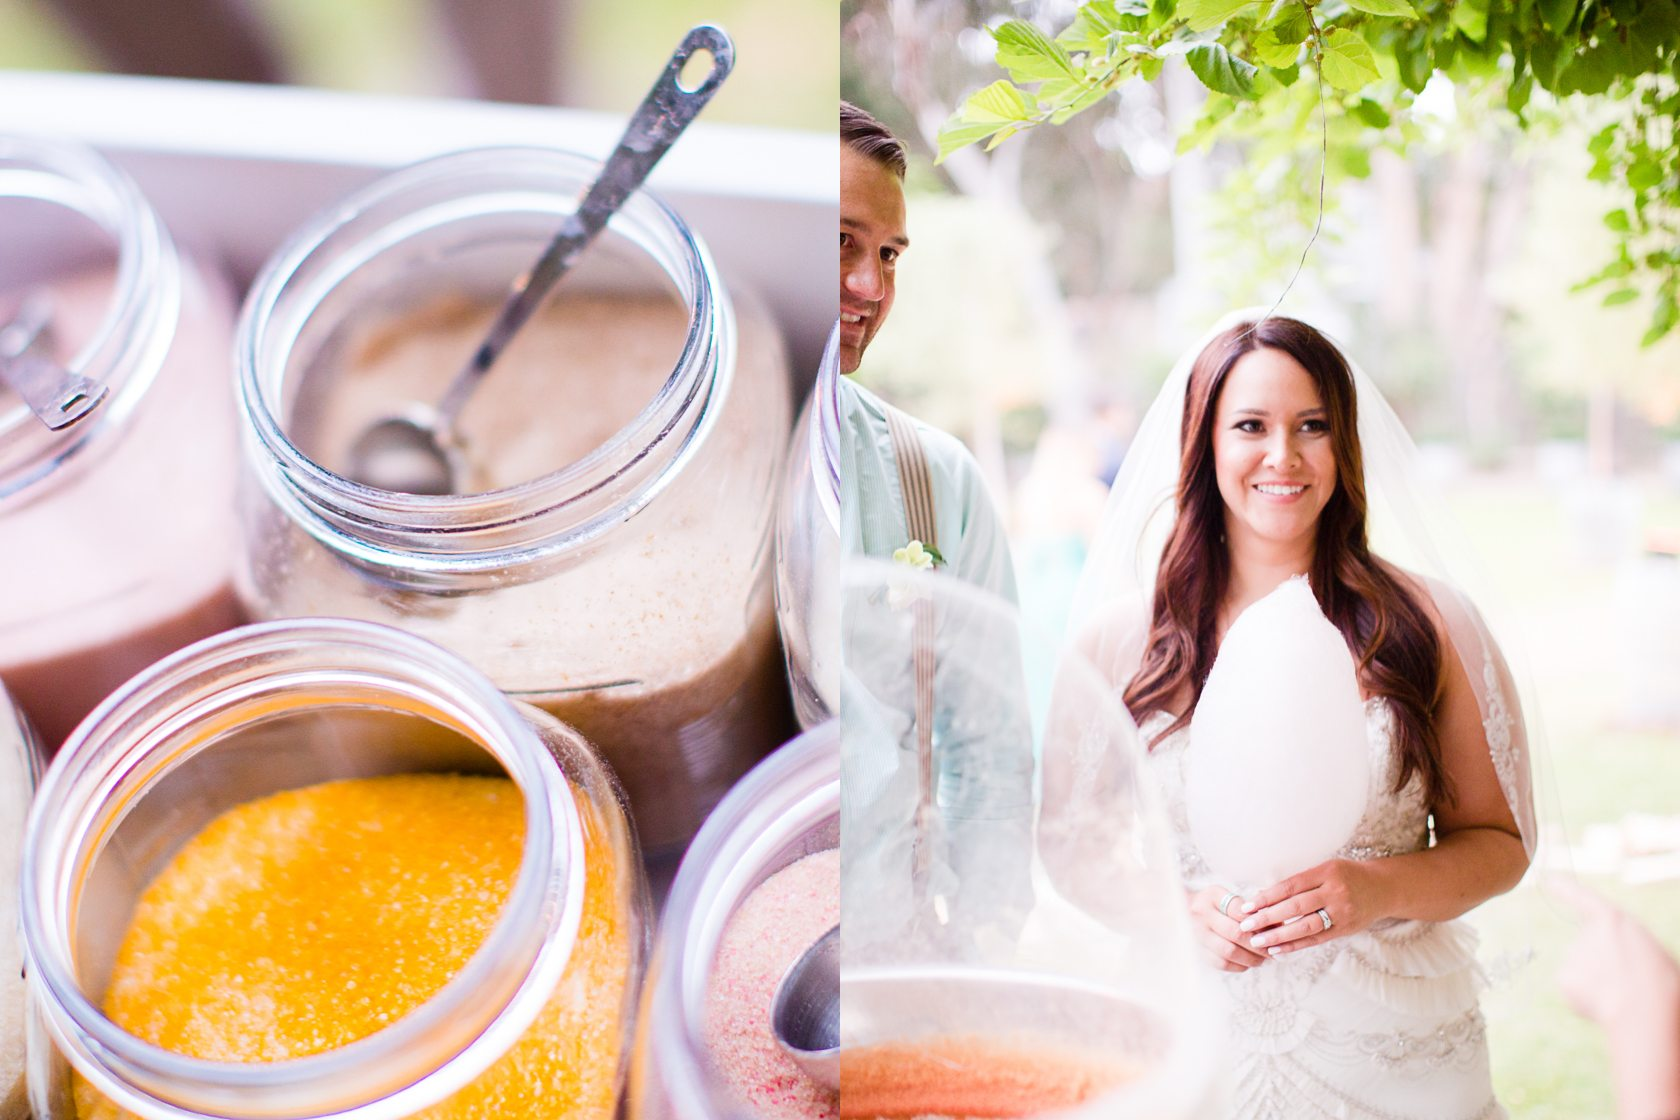 The_Printed_Palette_Wedding_at_Calamigos_Ranch_097.jpg